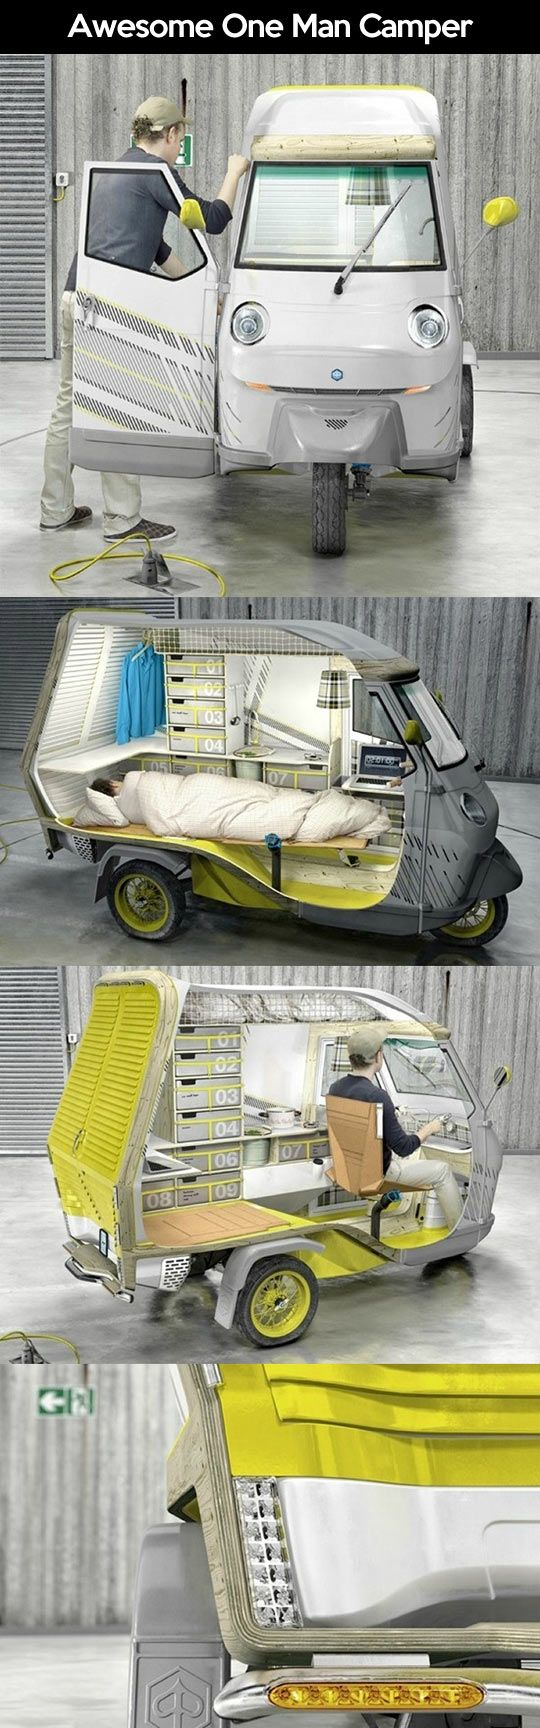 Awesome One Man Camper Camper Car Camping Cool Campers